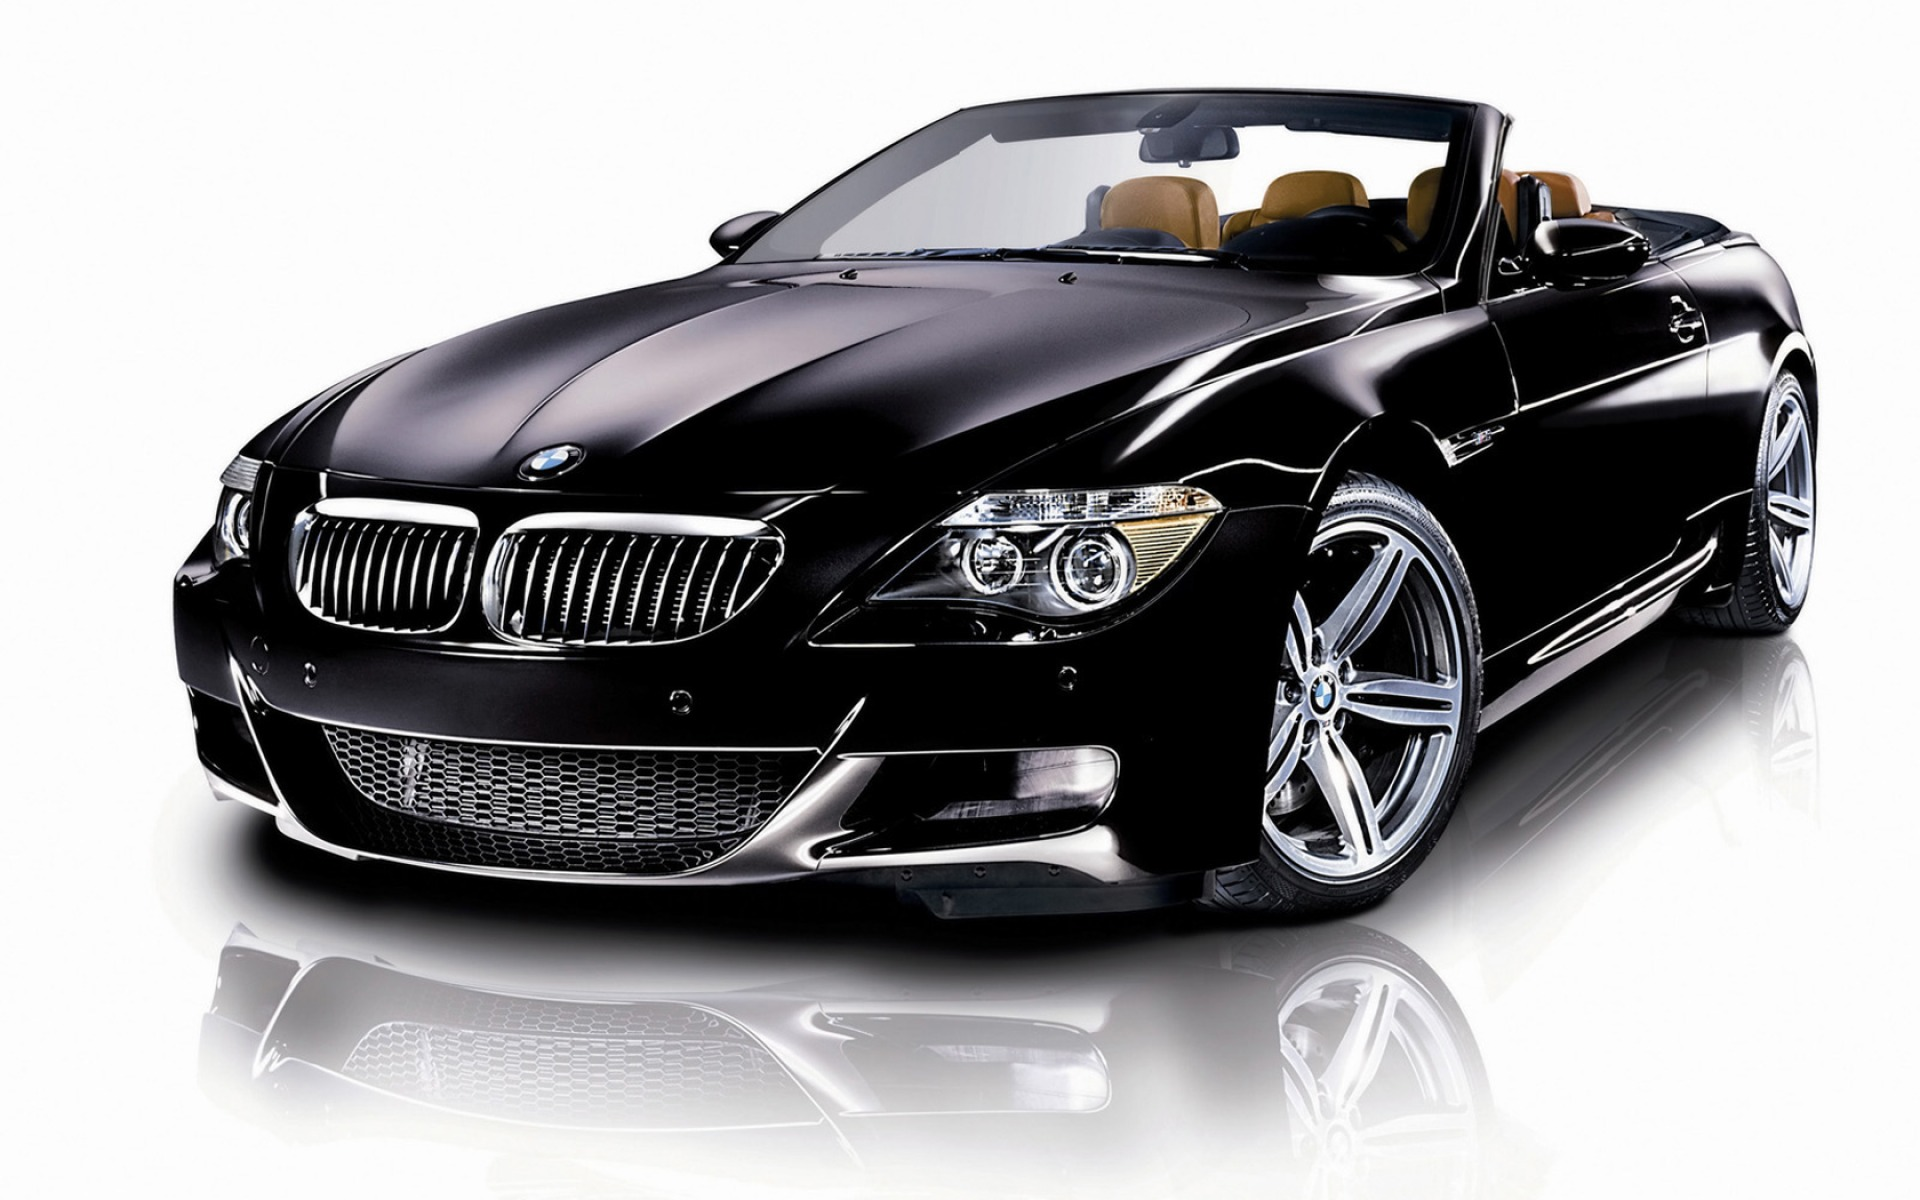 Ultrablogus  Personable Bmw Car Wallpaper Wallpapers For Free Download About   With Lovely Bmw M Convertible Wallpaper Bmw Cars With Amusing  Camry Interior Also  Passat Interior In Addition  Camaro Interior Accessories And  Acura Cl Interior As Well As  Lincoln Navigator Interior Parts Additionally  Jeep Cherokee Limited Interior From Allfreedownloadcom With Ultrablogus  Lovely Bmw Car Wallpaper Wallpapers For Free Download About   With Amusing Bmw M Convertible Wallpaper Bmw Cars And Personable  Camry Interior Also  Passat Interior In Addition  Camaro Interior Accessories From Allfreedownloadcom